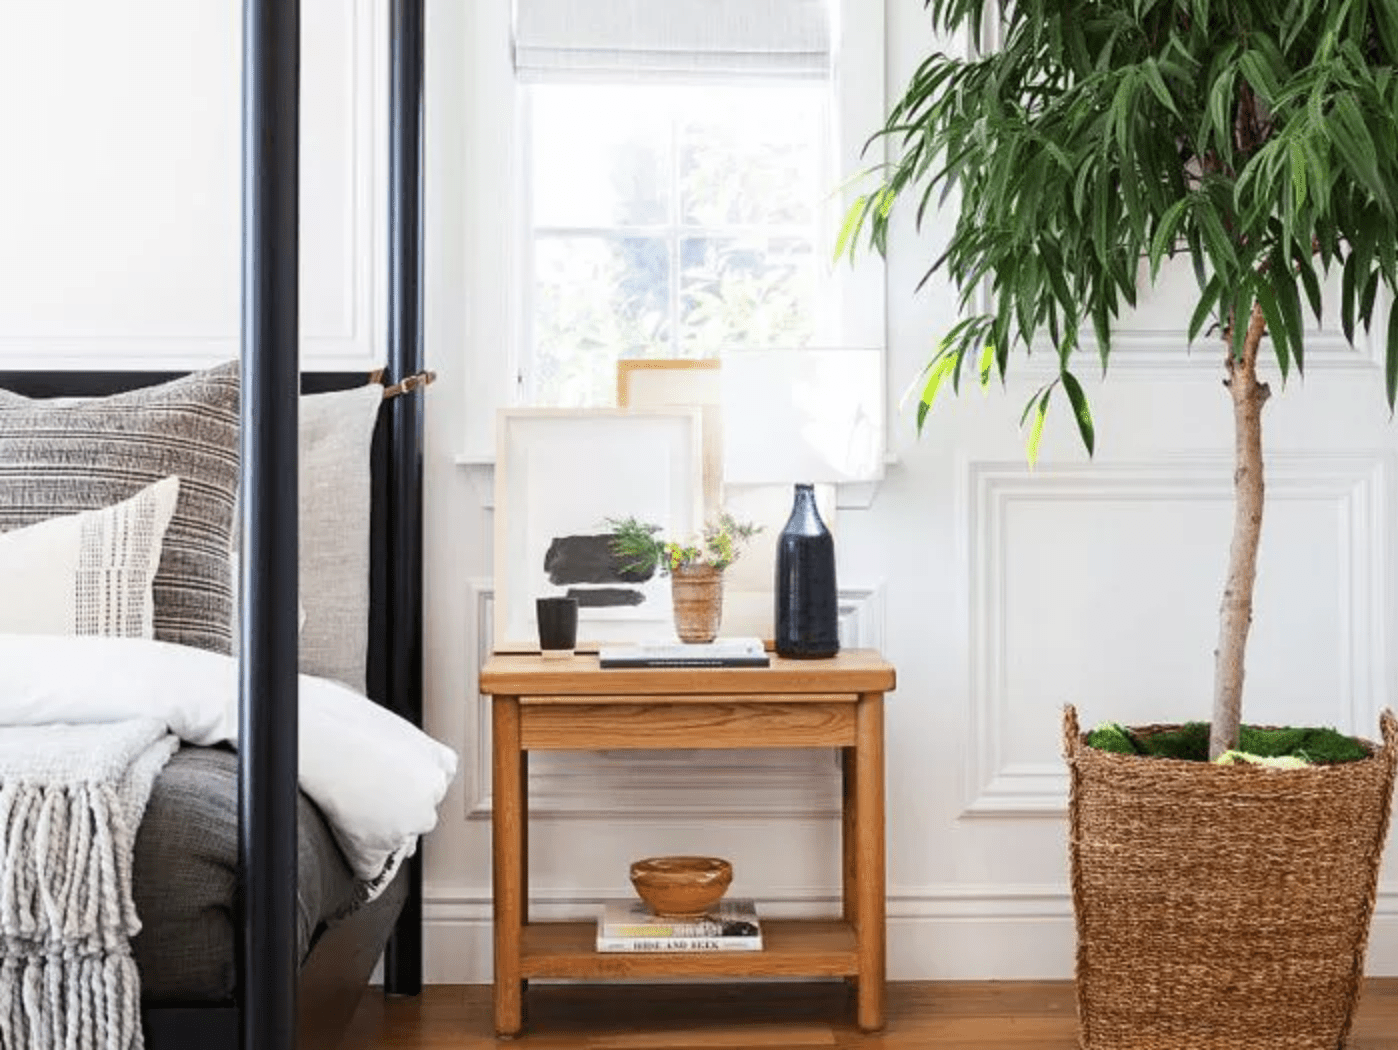 Four post bed positioned to the left of a window, a wooden nightstand positioned beneath and next to it, a potted tree